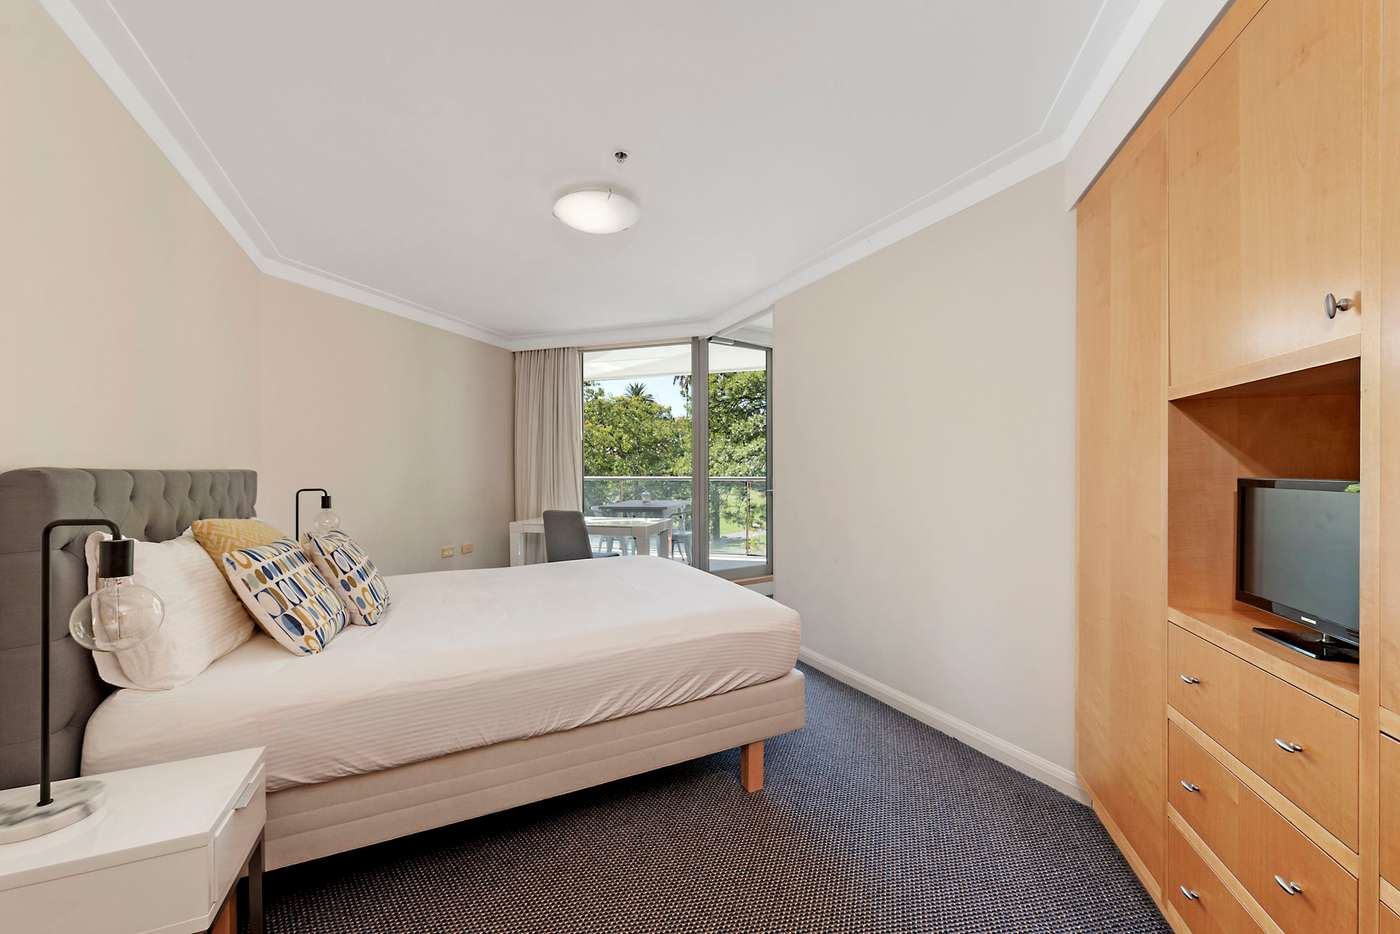 Fifth view of Homely apartment listing, 512/61 Macquarie Street, Sydney NSW 2000